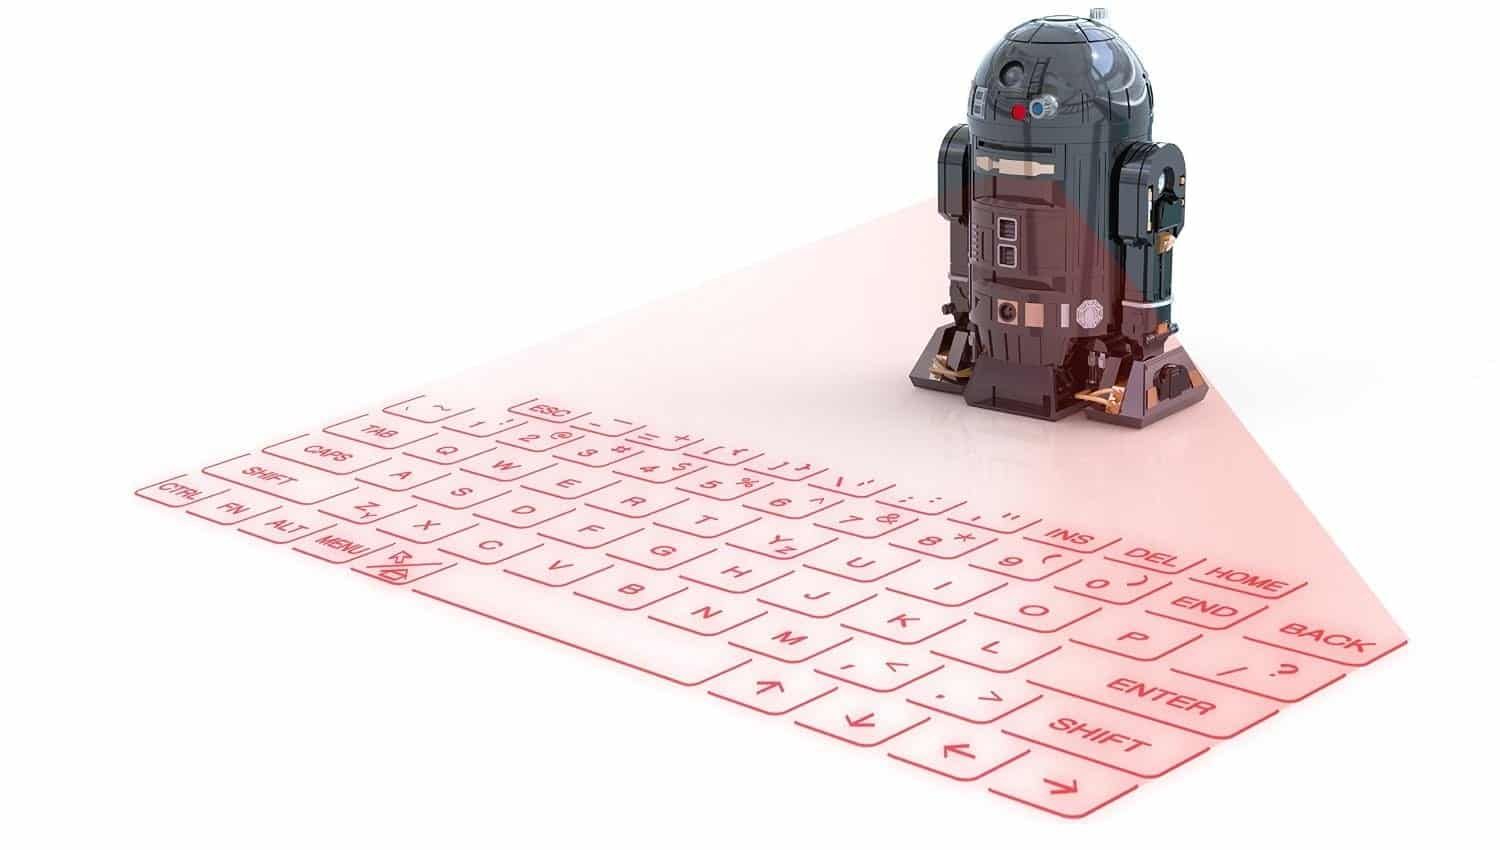 Star Wars droid projector that projects a Virtual Keyboard on any Surface